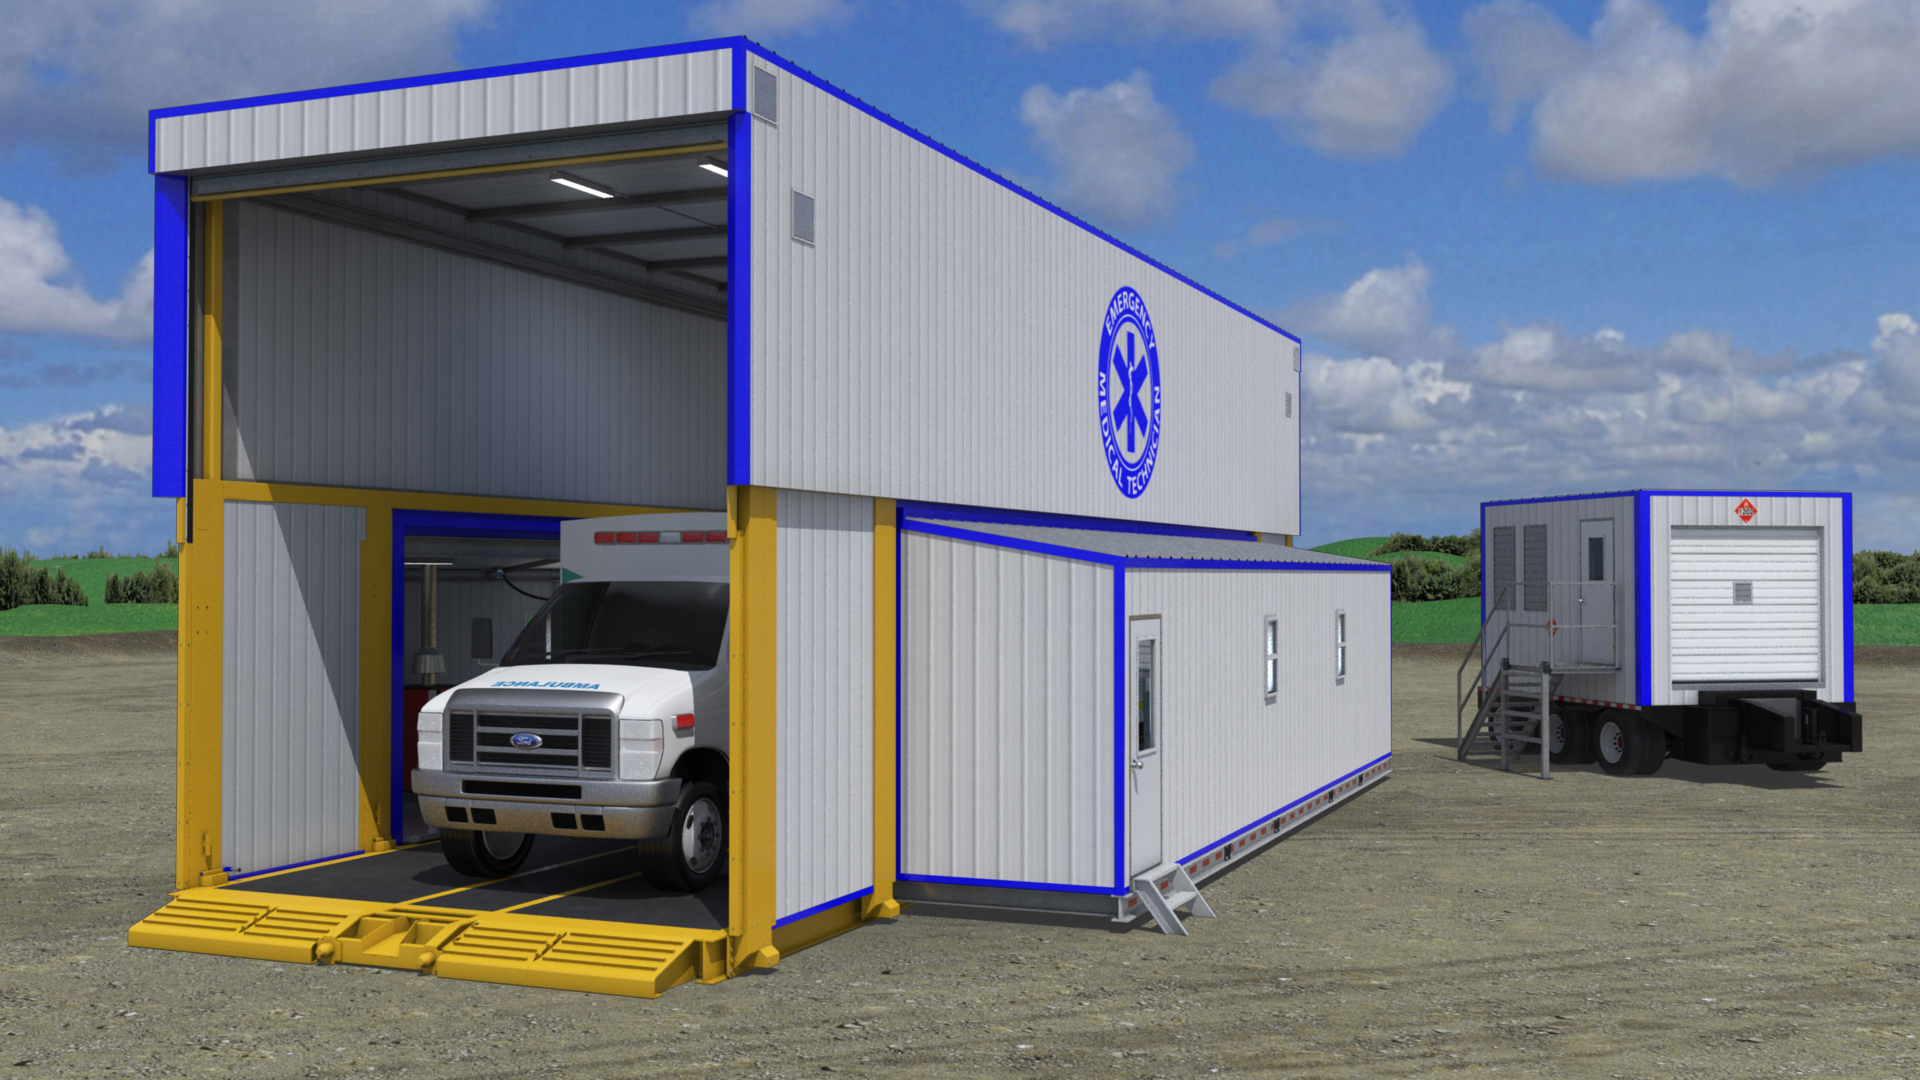 extreme portable buildings trans4mer mobile ambulance bay thumbnail